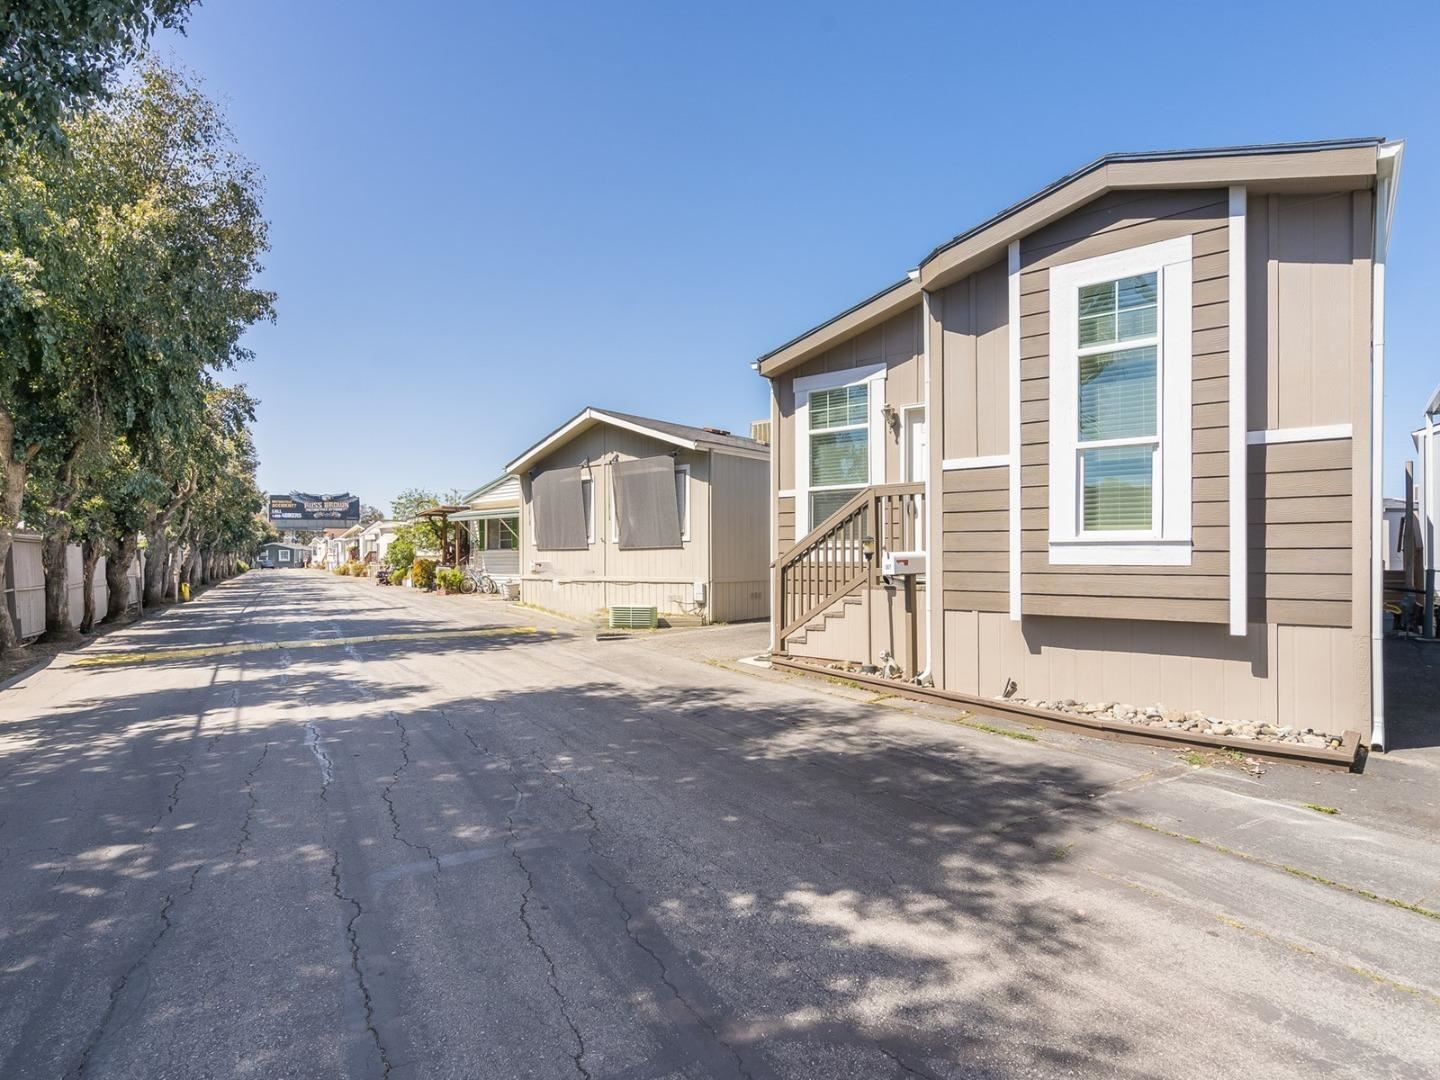 3015 East Bayshore Road, Redwood City, CA 94063 - #: ML81837898